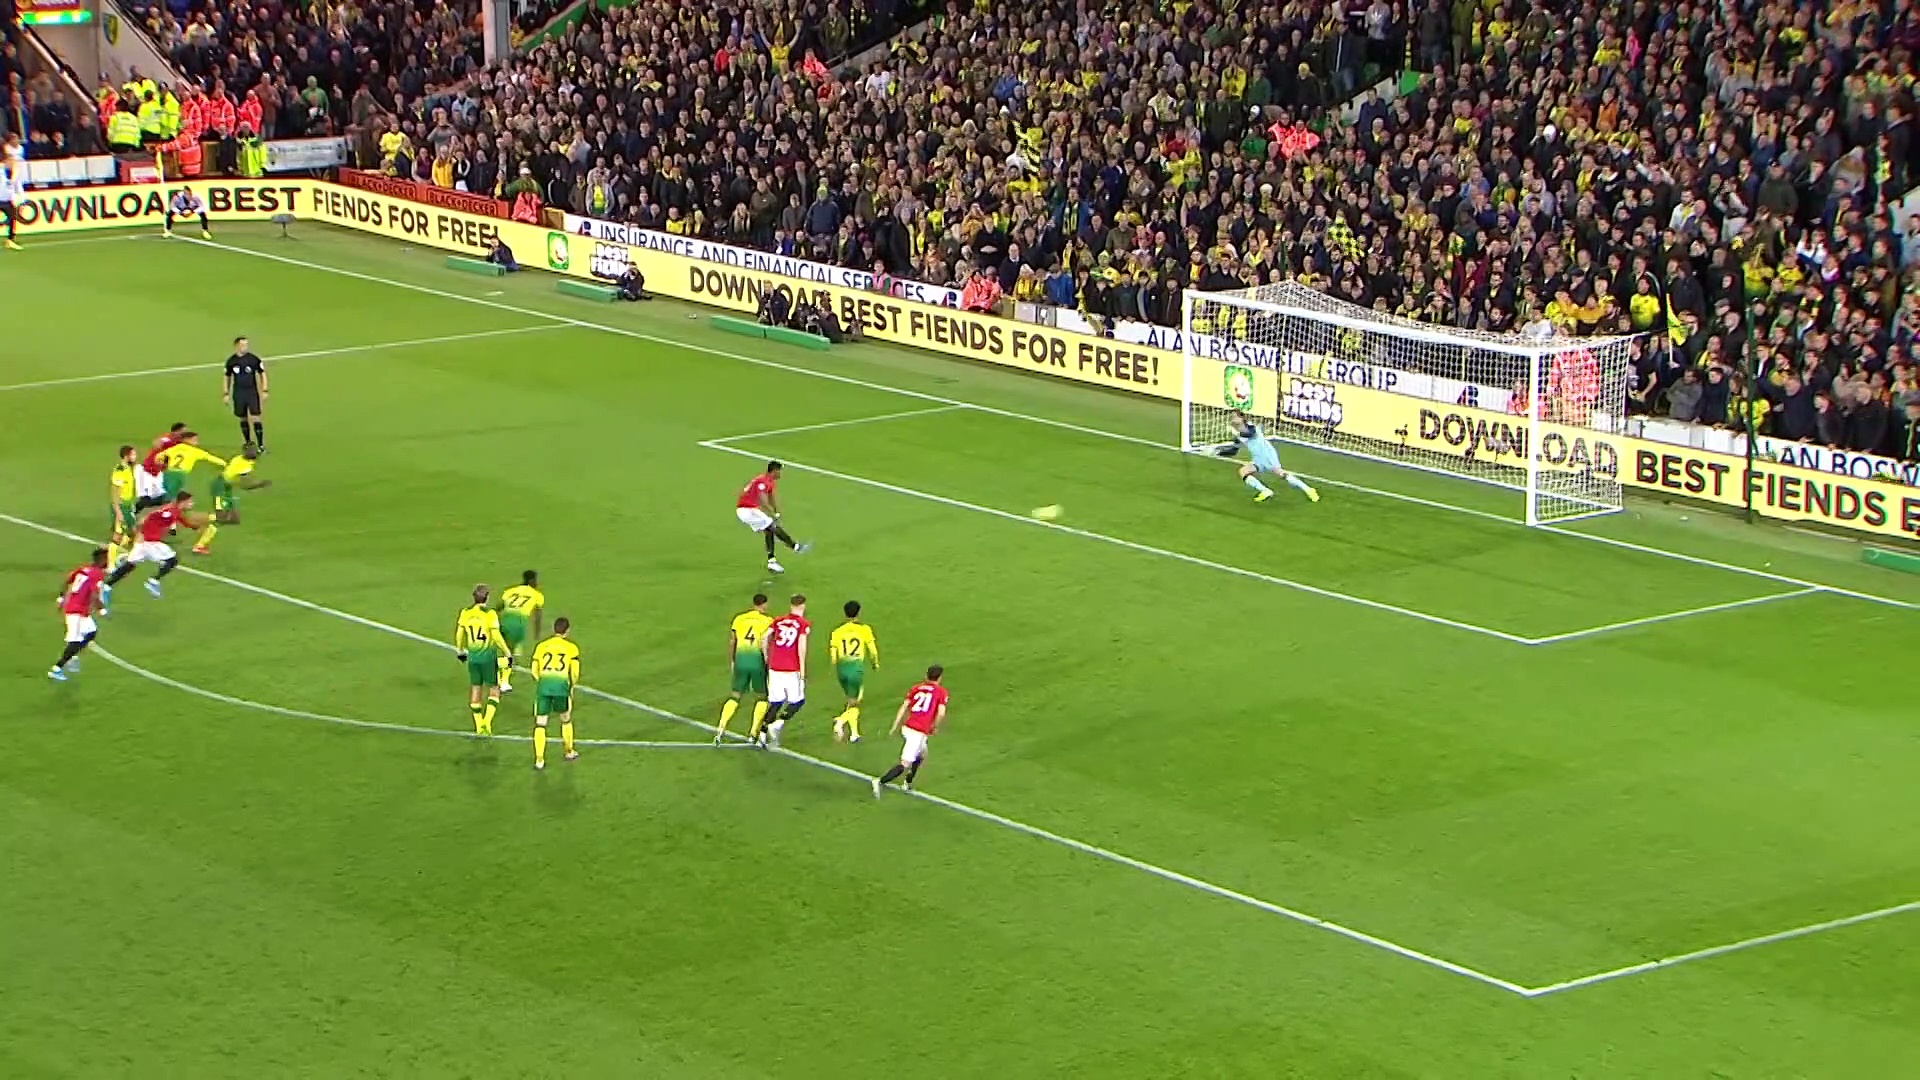 10. Hafta / Norwich City - Manchester United: 1-3 (Özet)